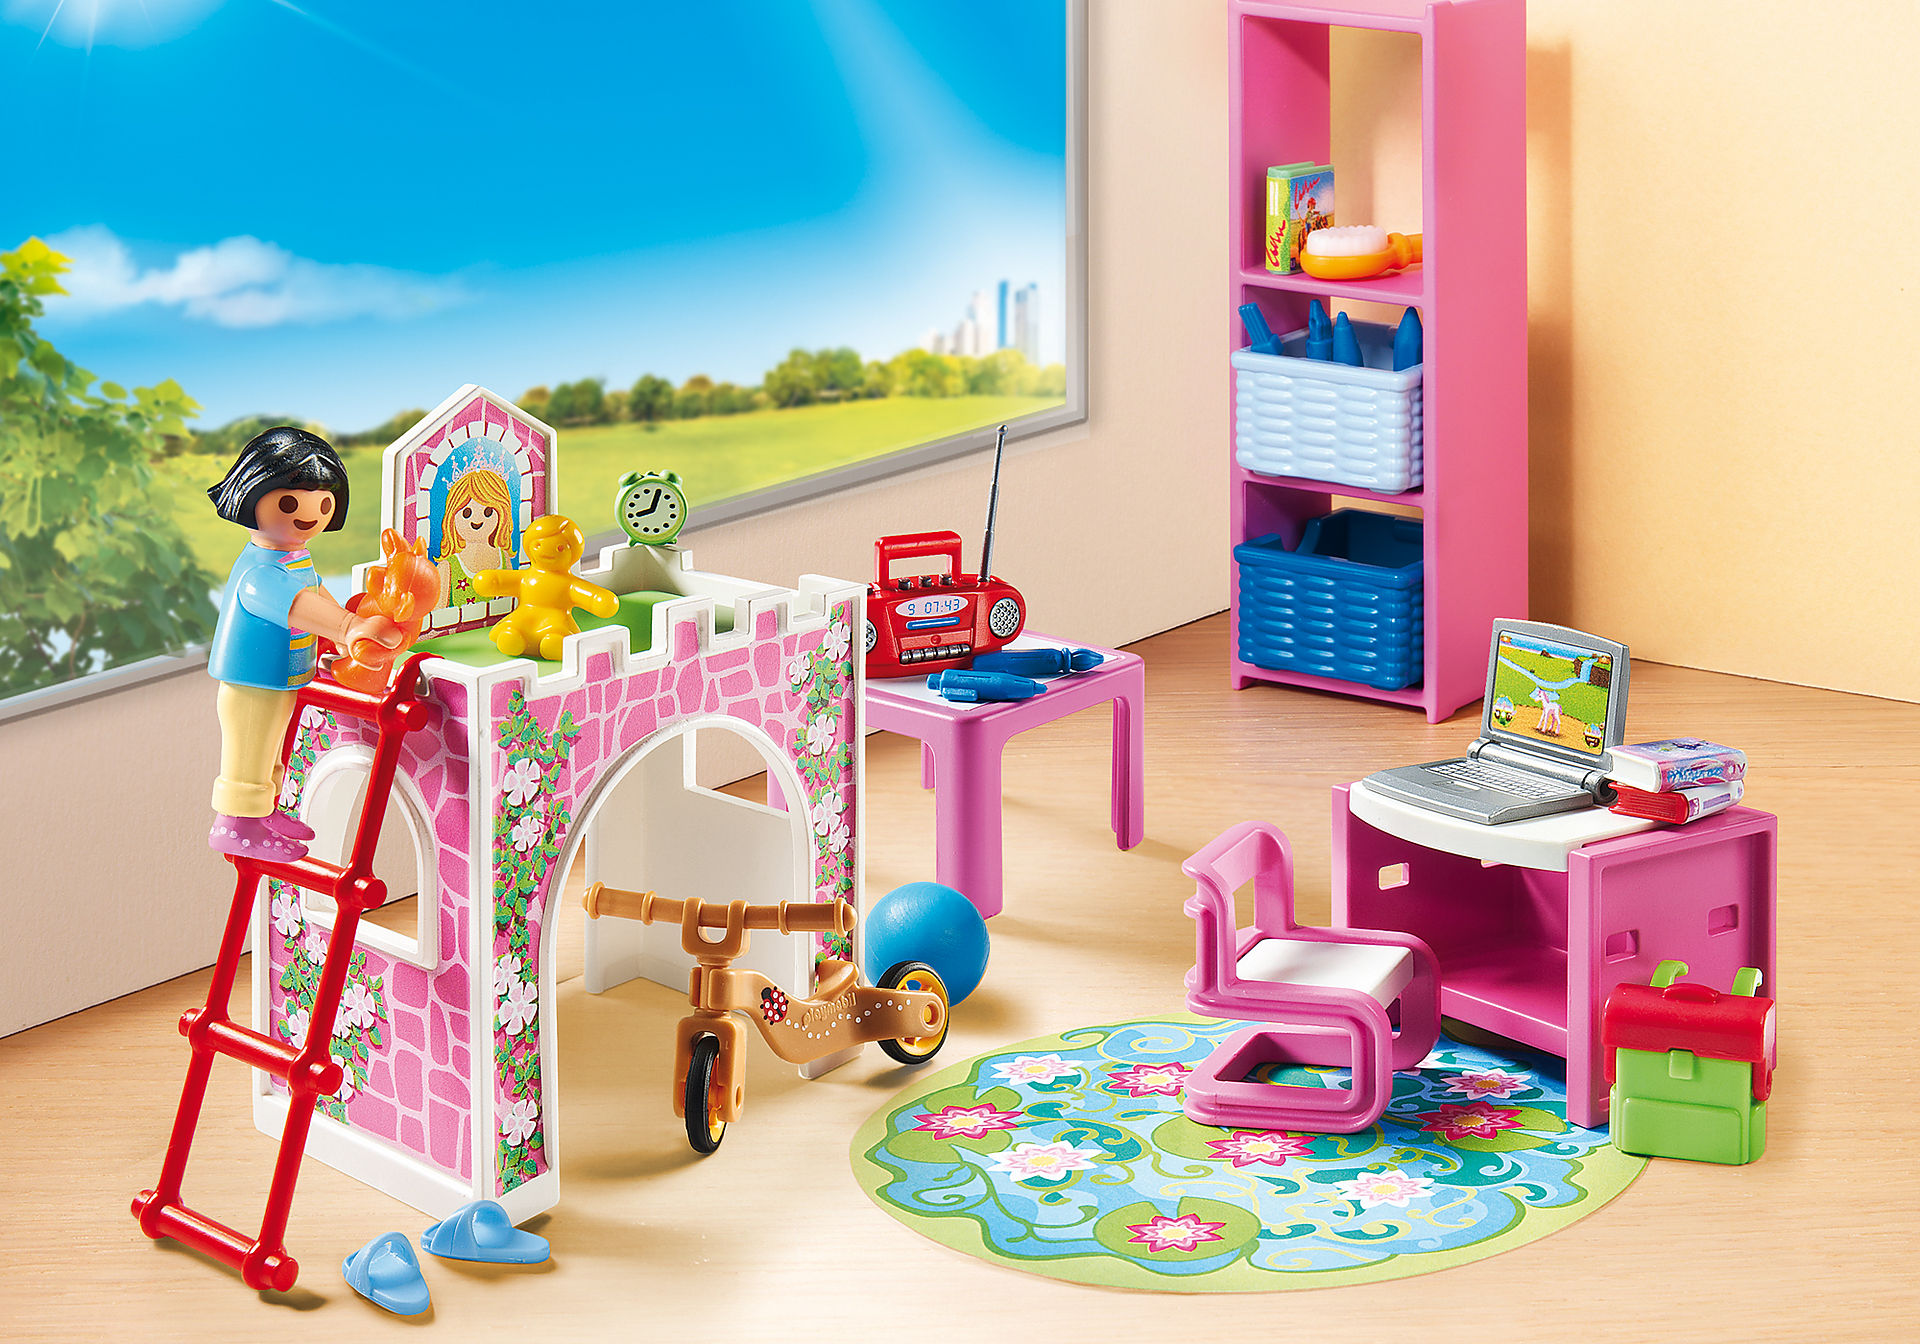 http://media.playmobil.com/i/playmobil/9270_product_detail/Fröhliches Kinderzimmer